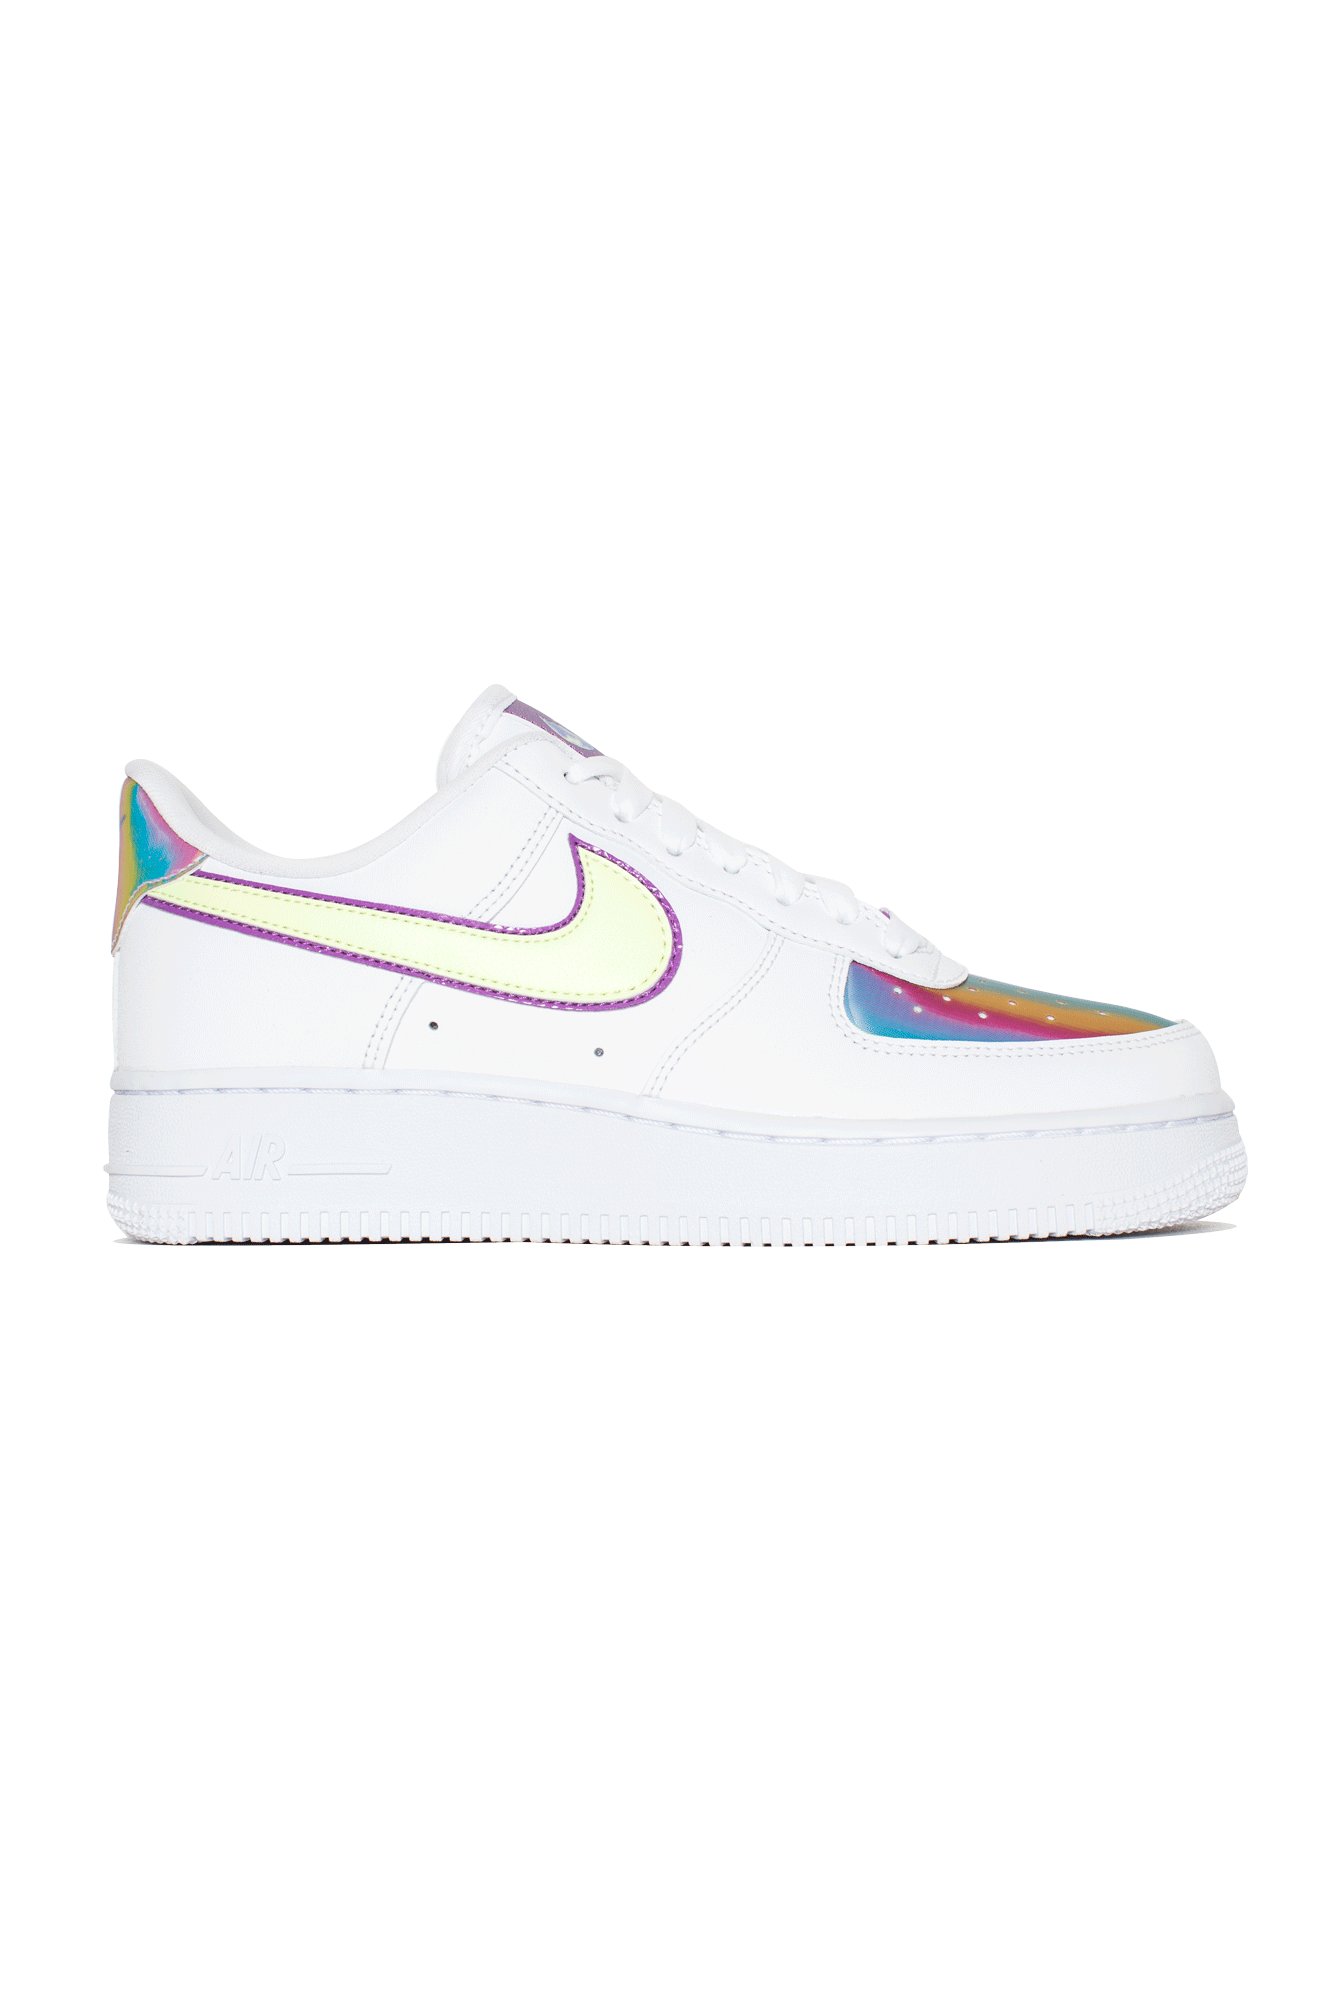 Nike Sneakers Wmns Air Force 1 Easter White CW0367-#000#100#8 - One Block Down